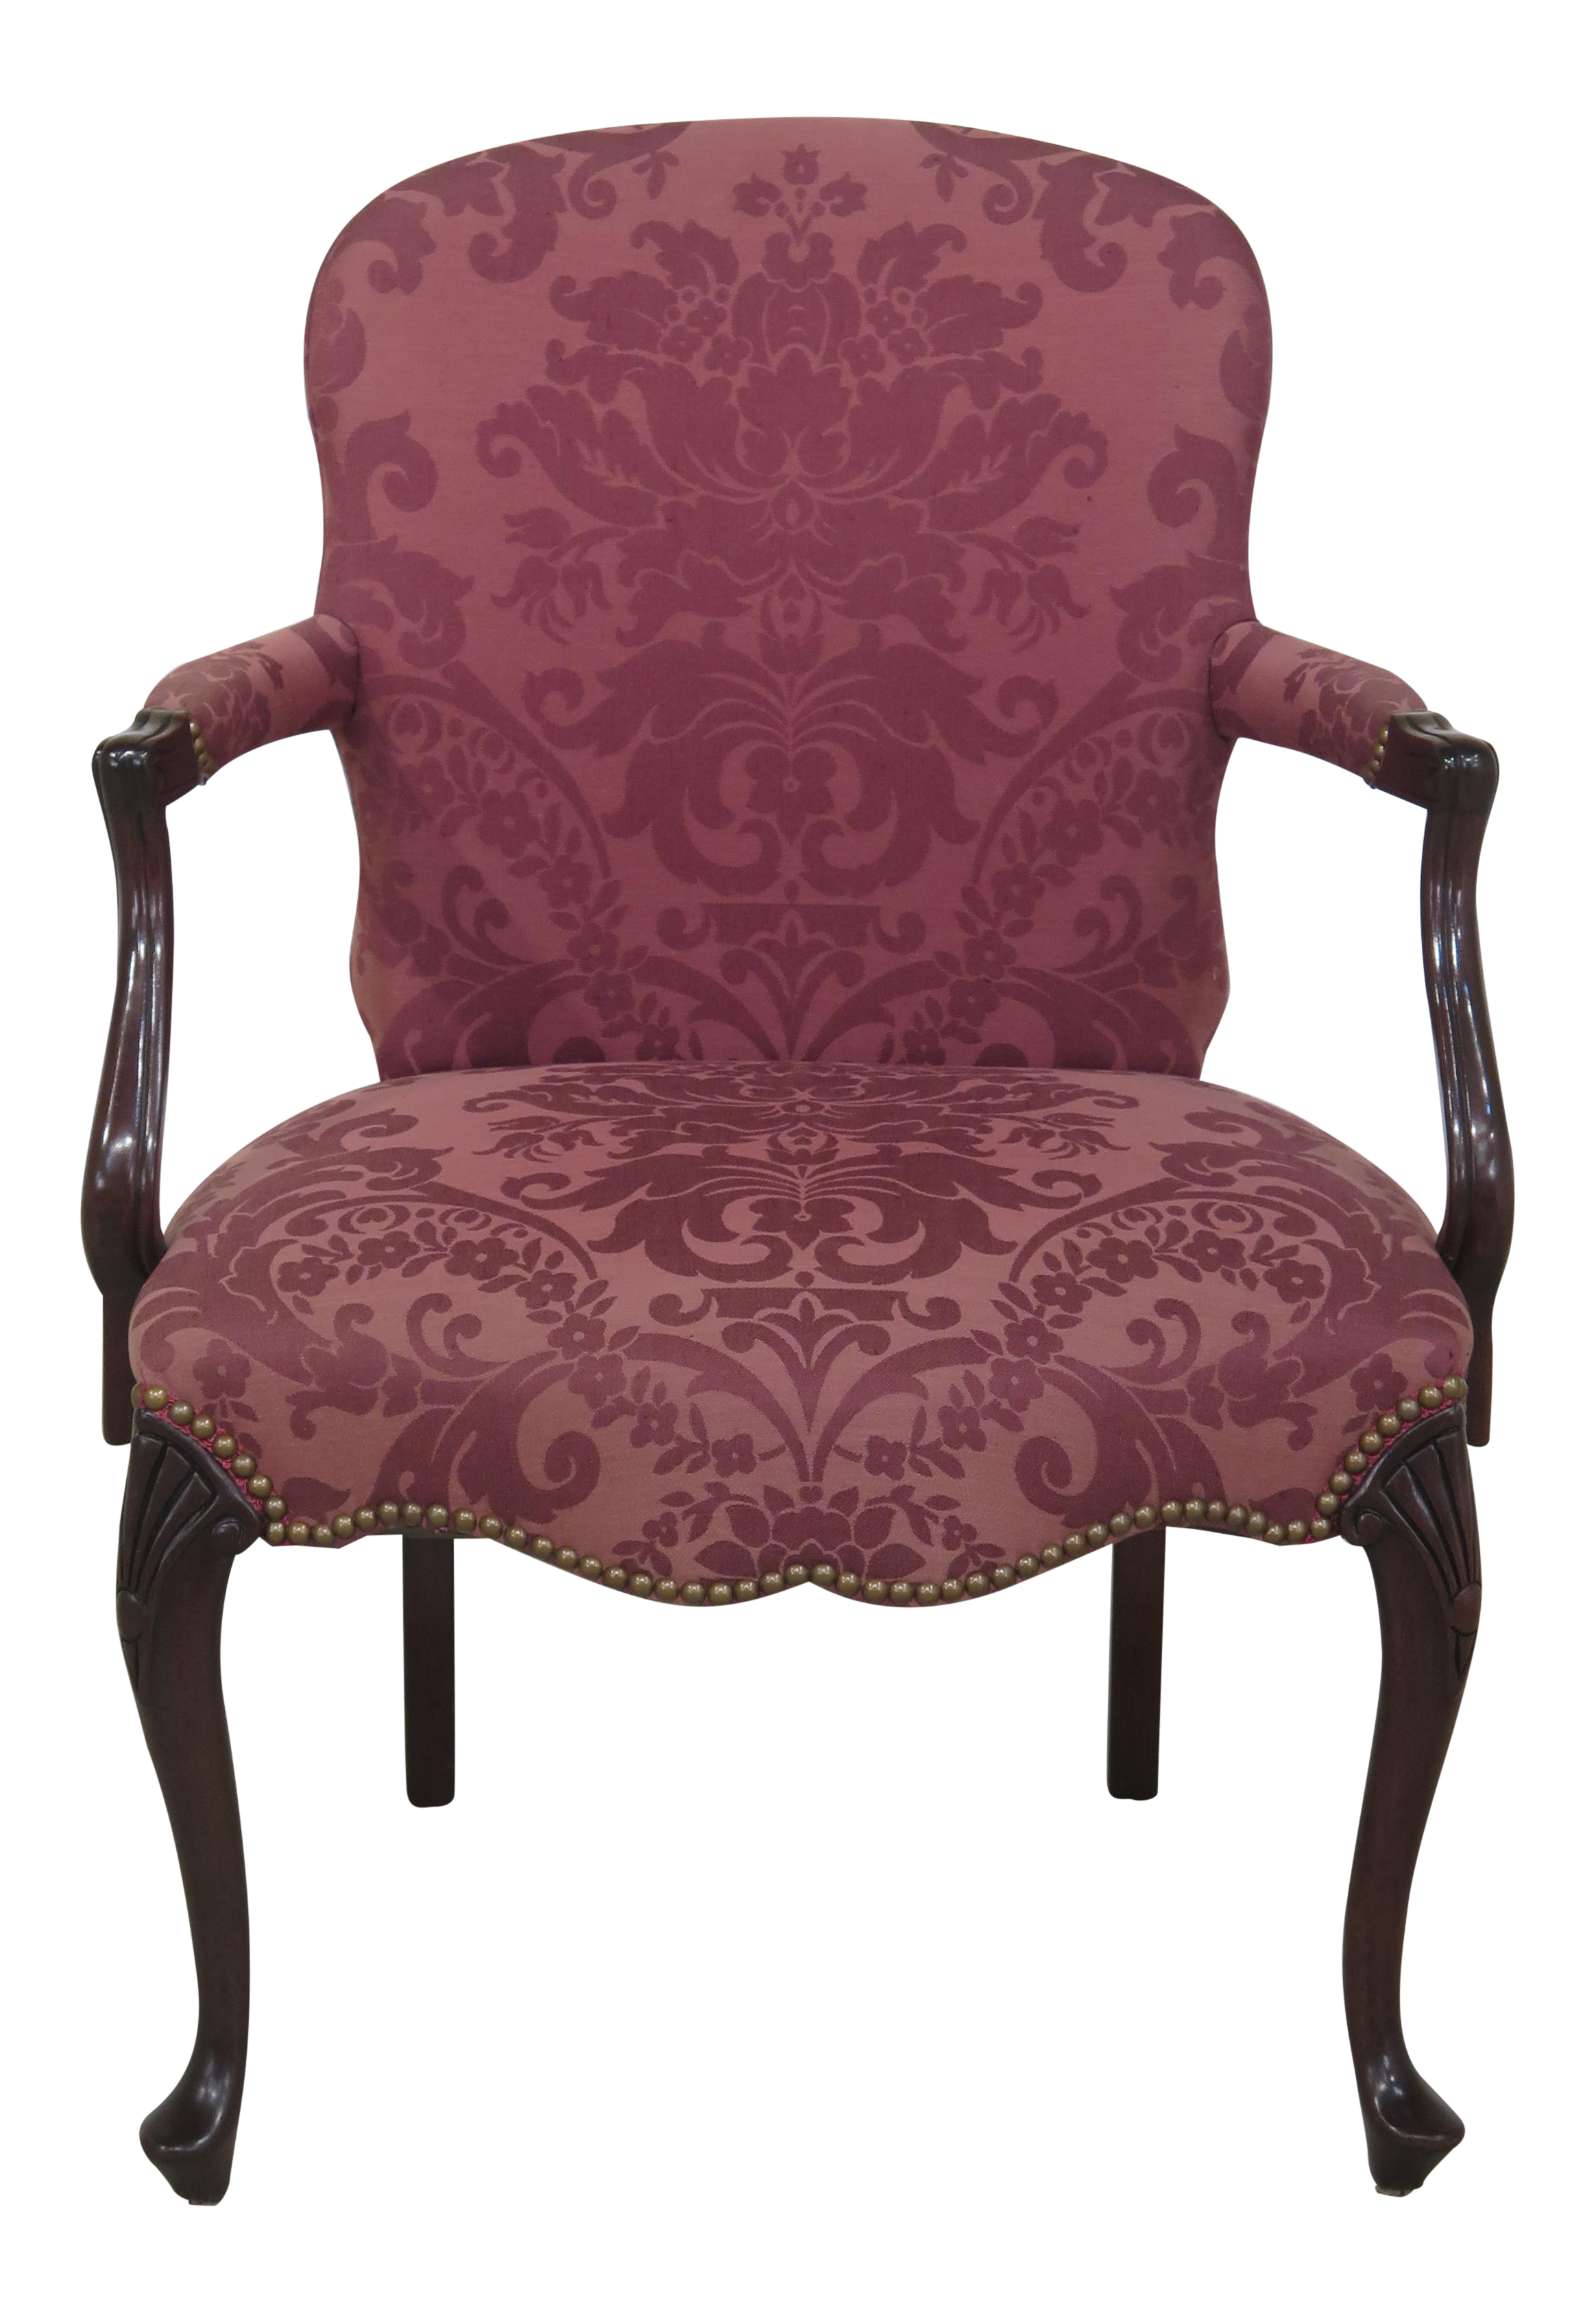 Hickory Chair Co Queen Anne Mahogany Damask Armchair Queen Anne Armchair27